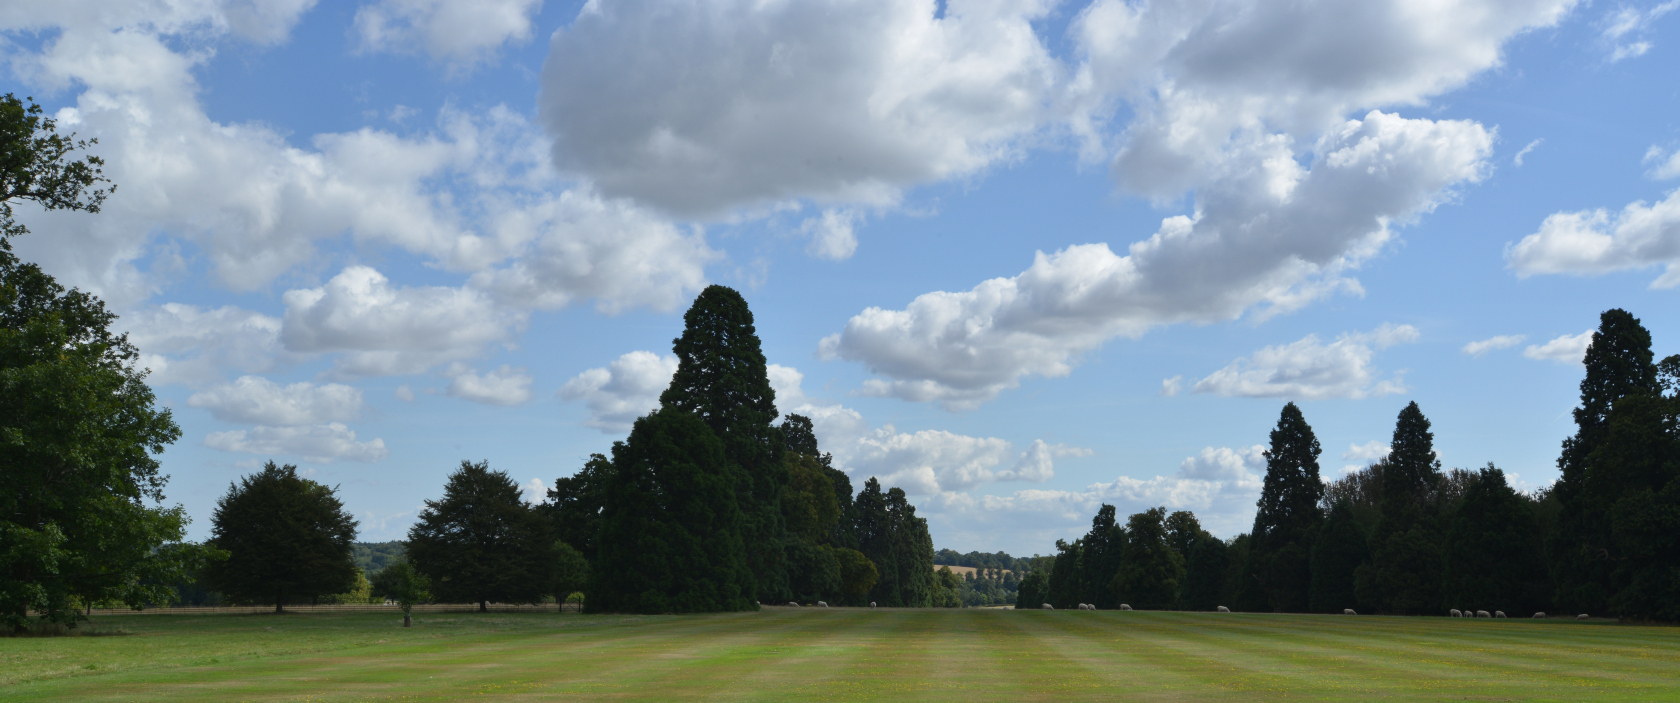 The front lawn at Gorhambury Estate, St Albans